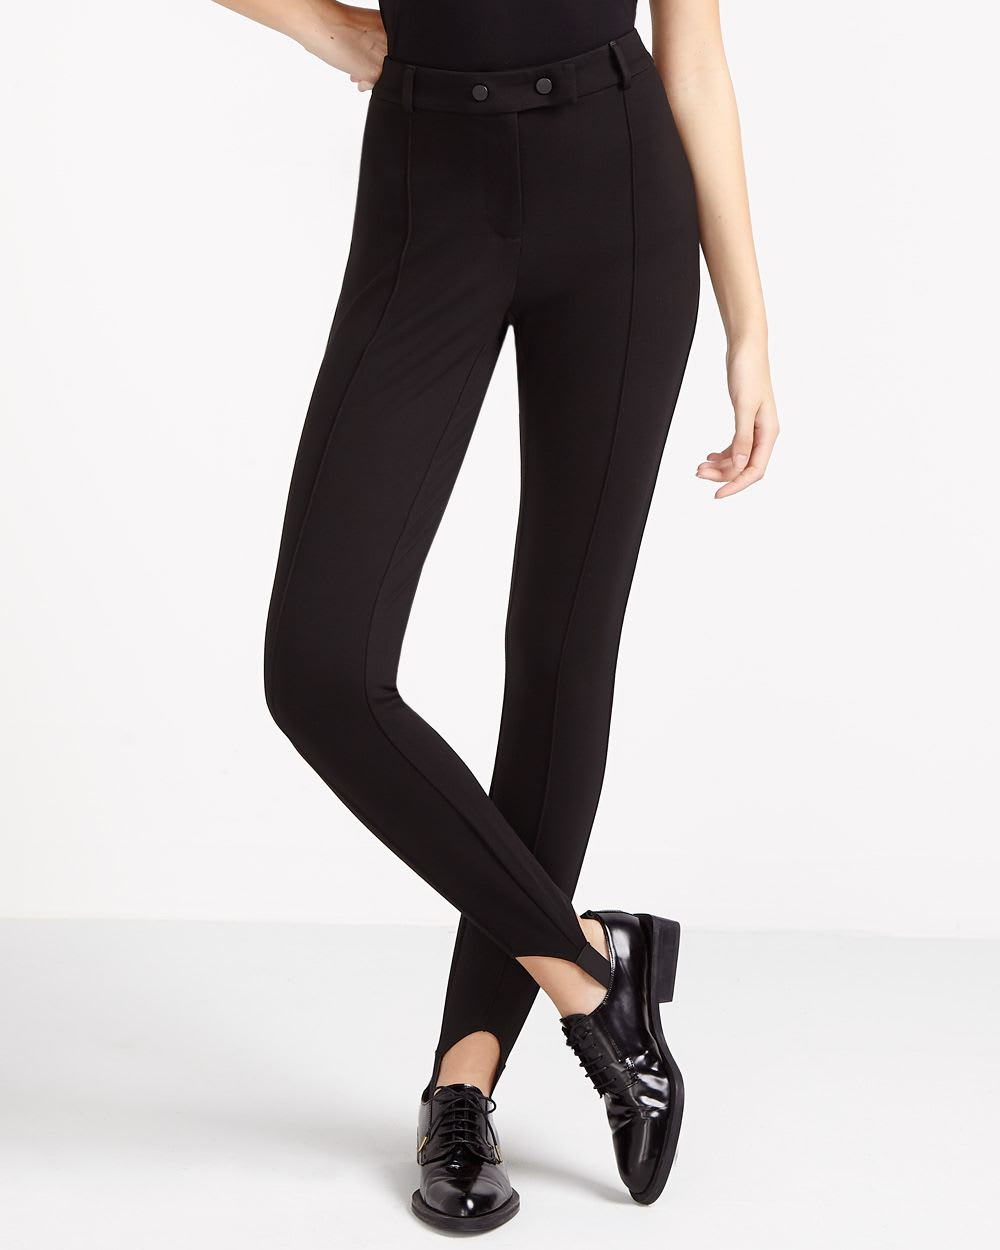 Find black stirrup pants at ShopStyle. Shop the latest collection of black stirrup pants from the most popular stores - all in one place.